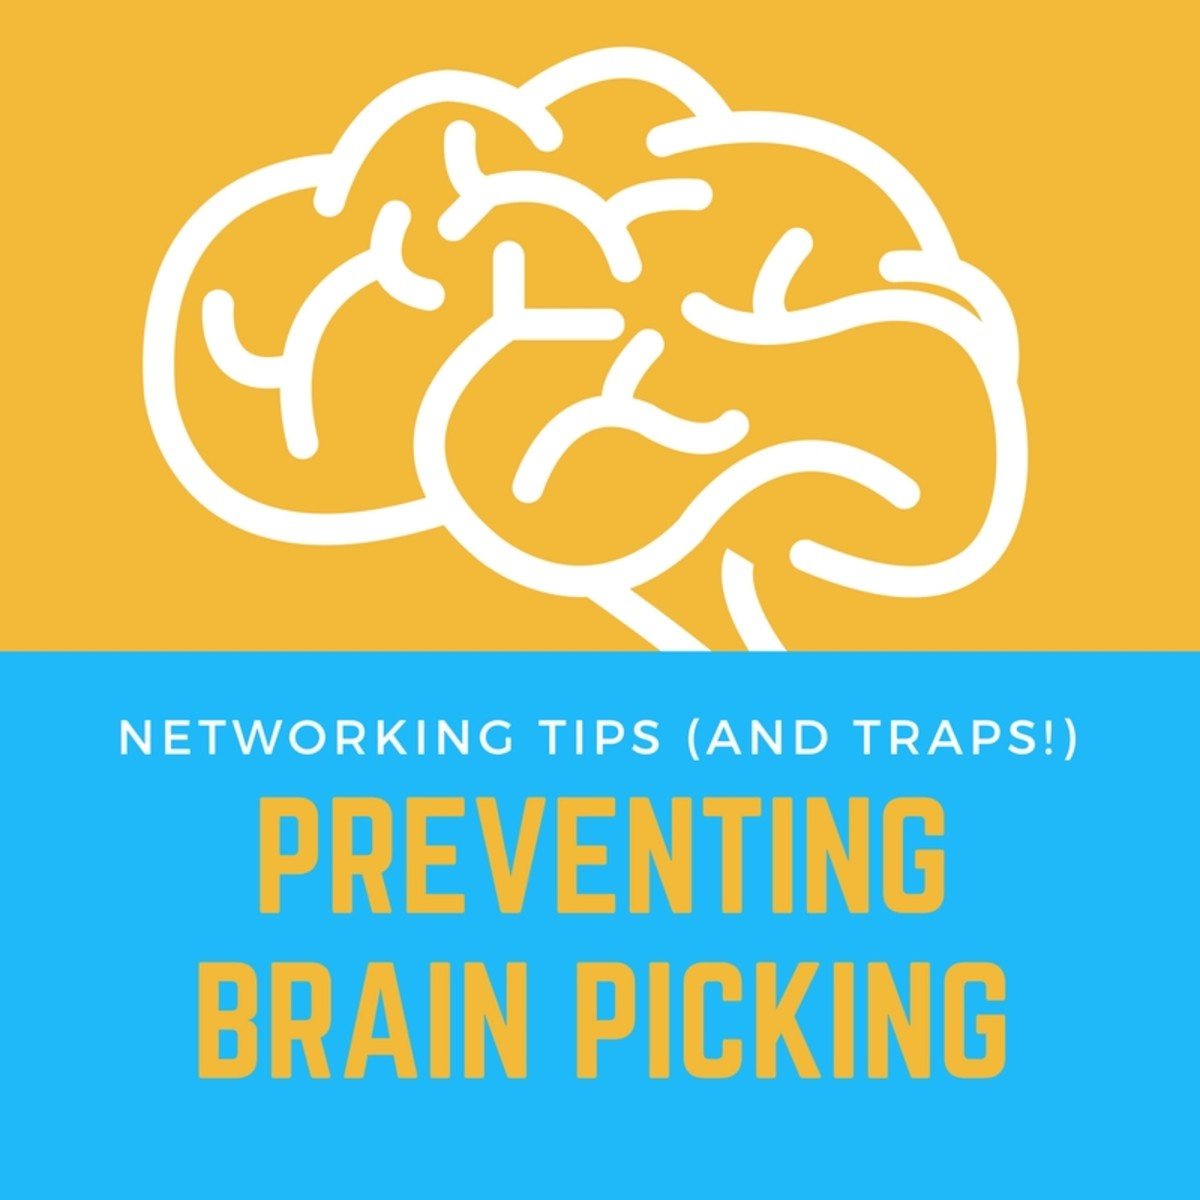 Networking Tips (and Traps!): Preventing Brain Picking